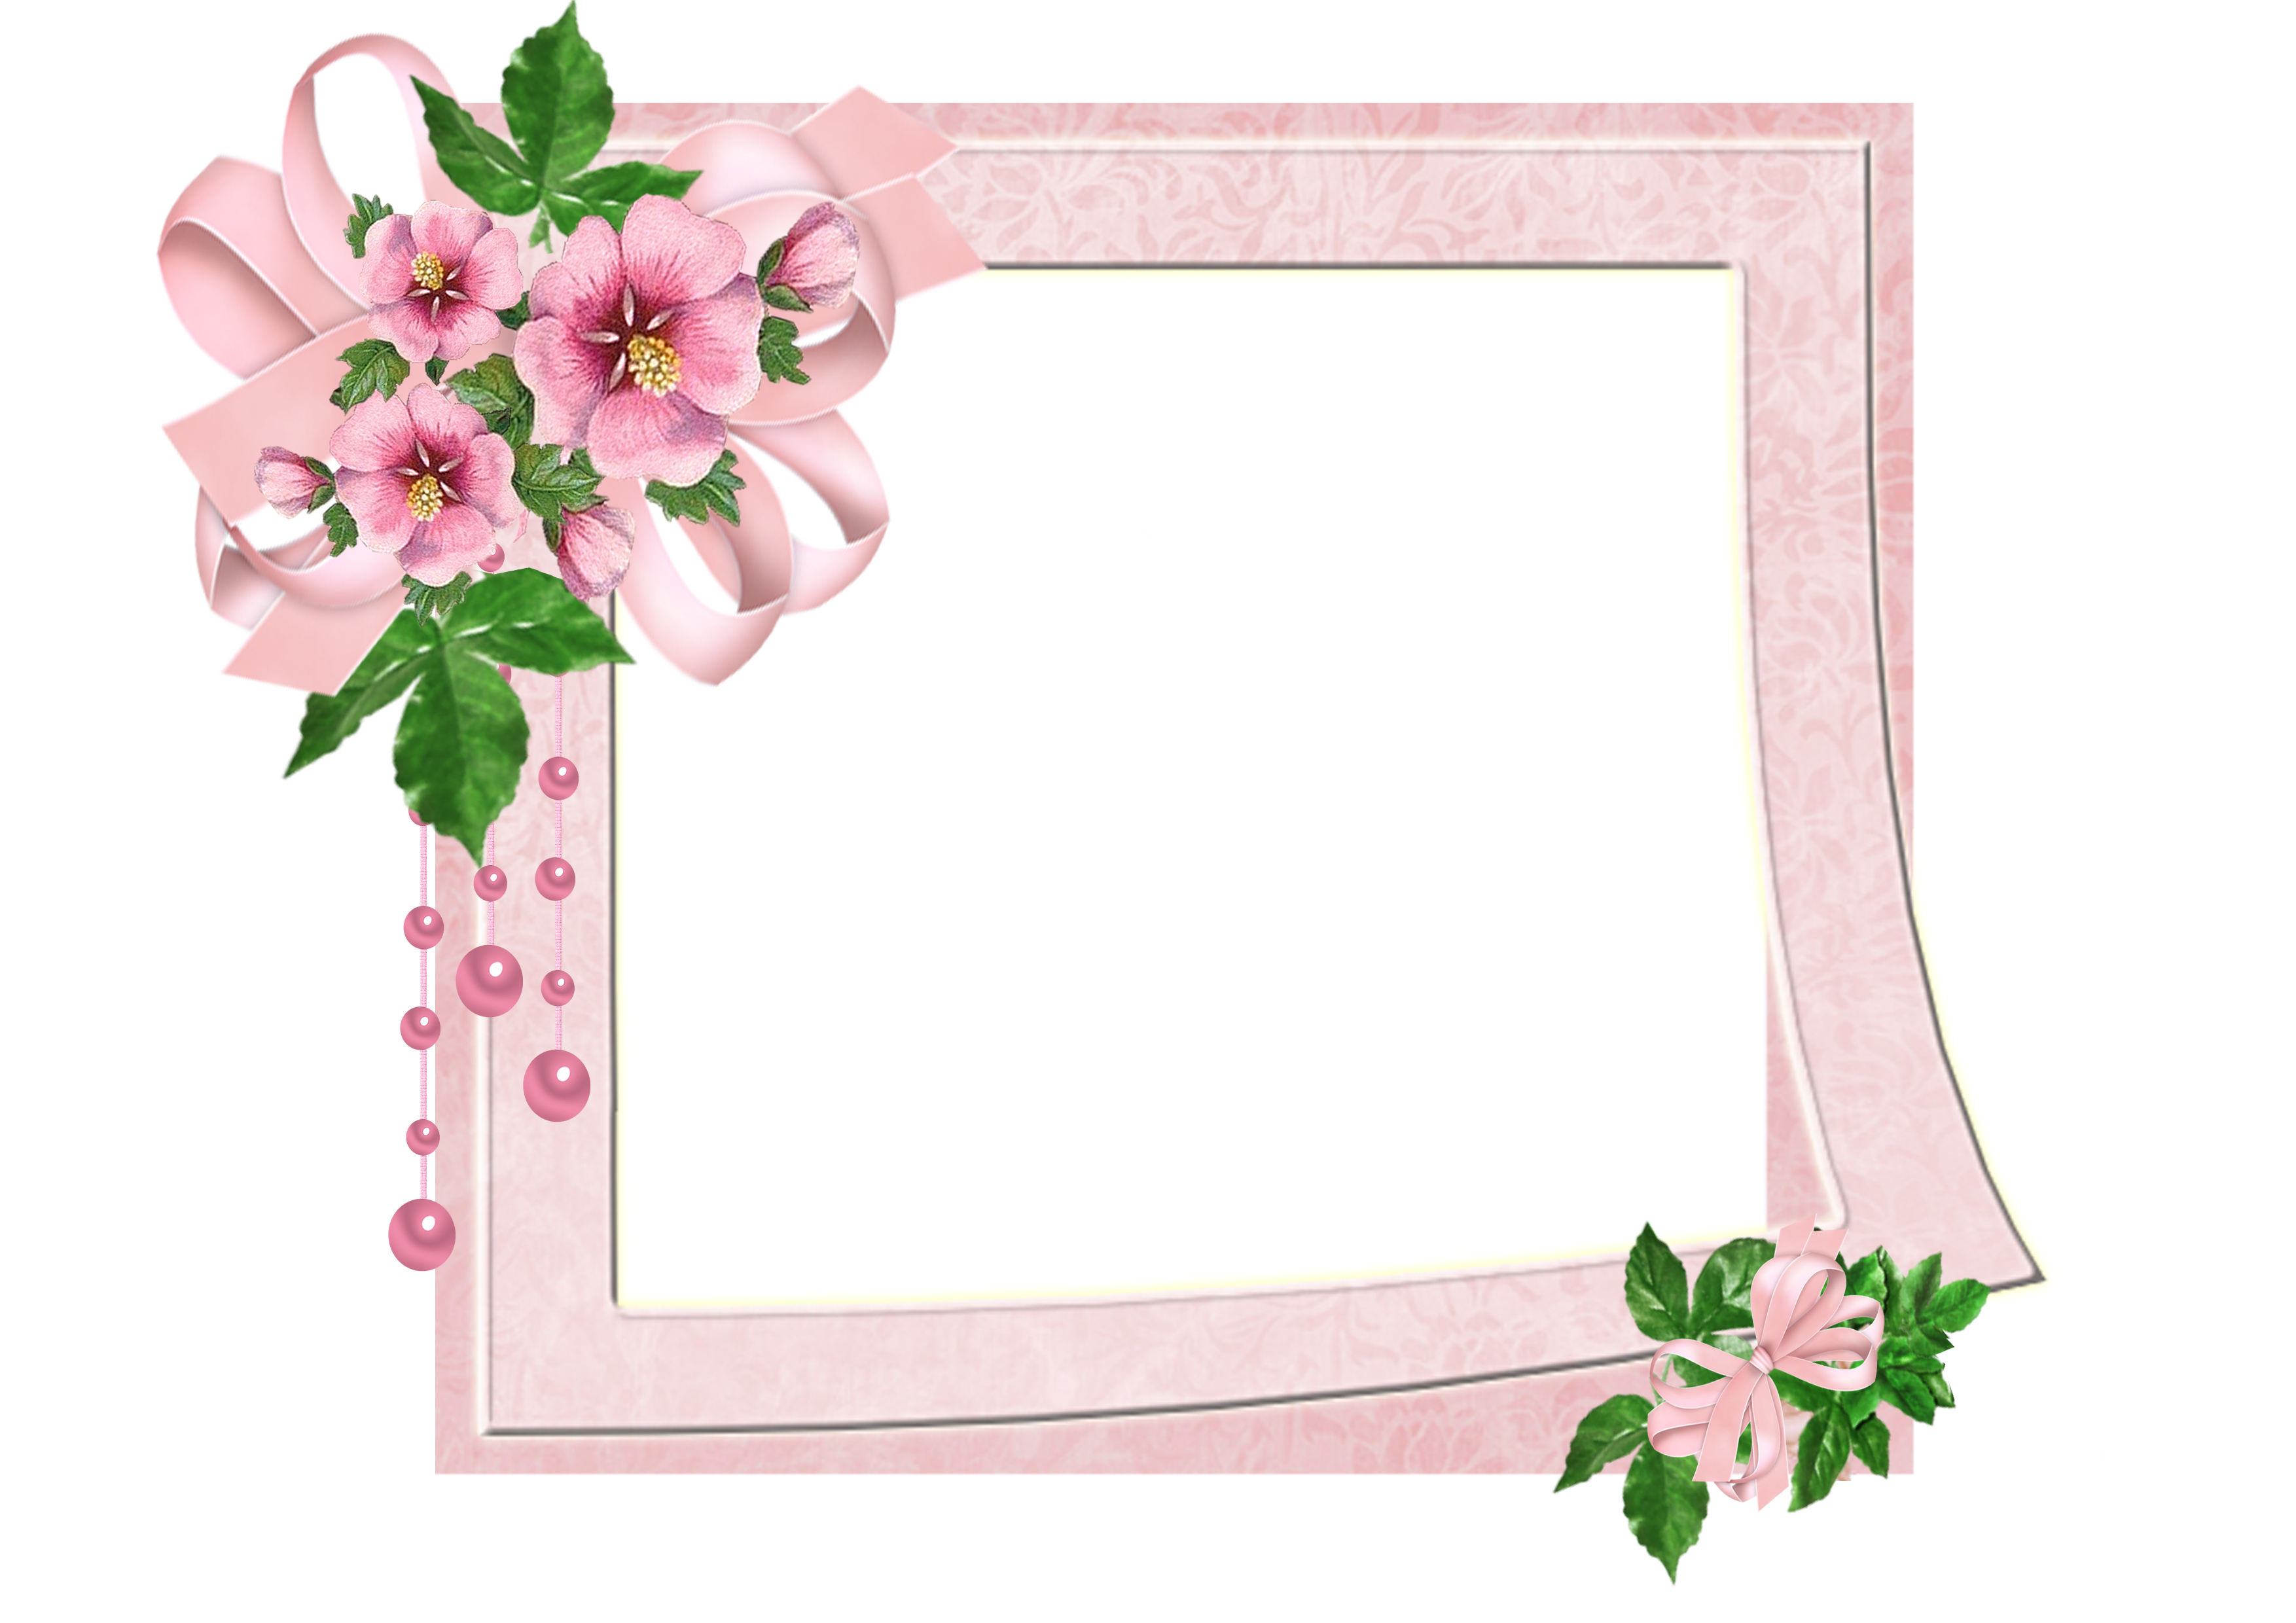 pink frame with flowers and ribbon